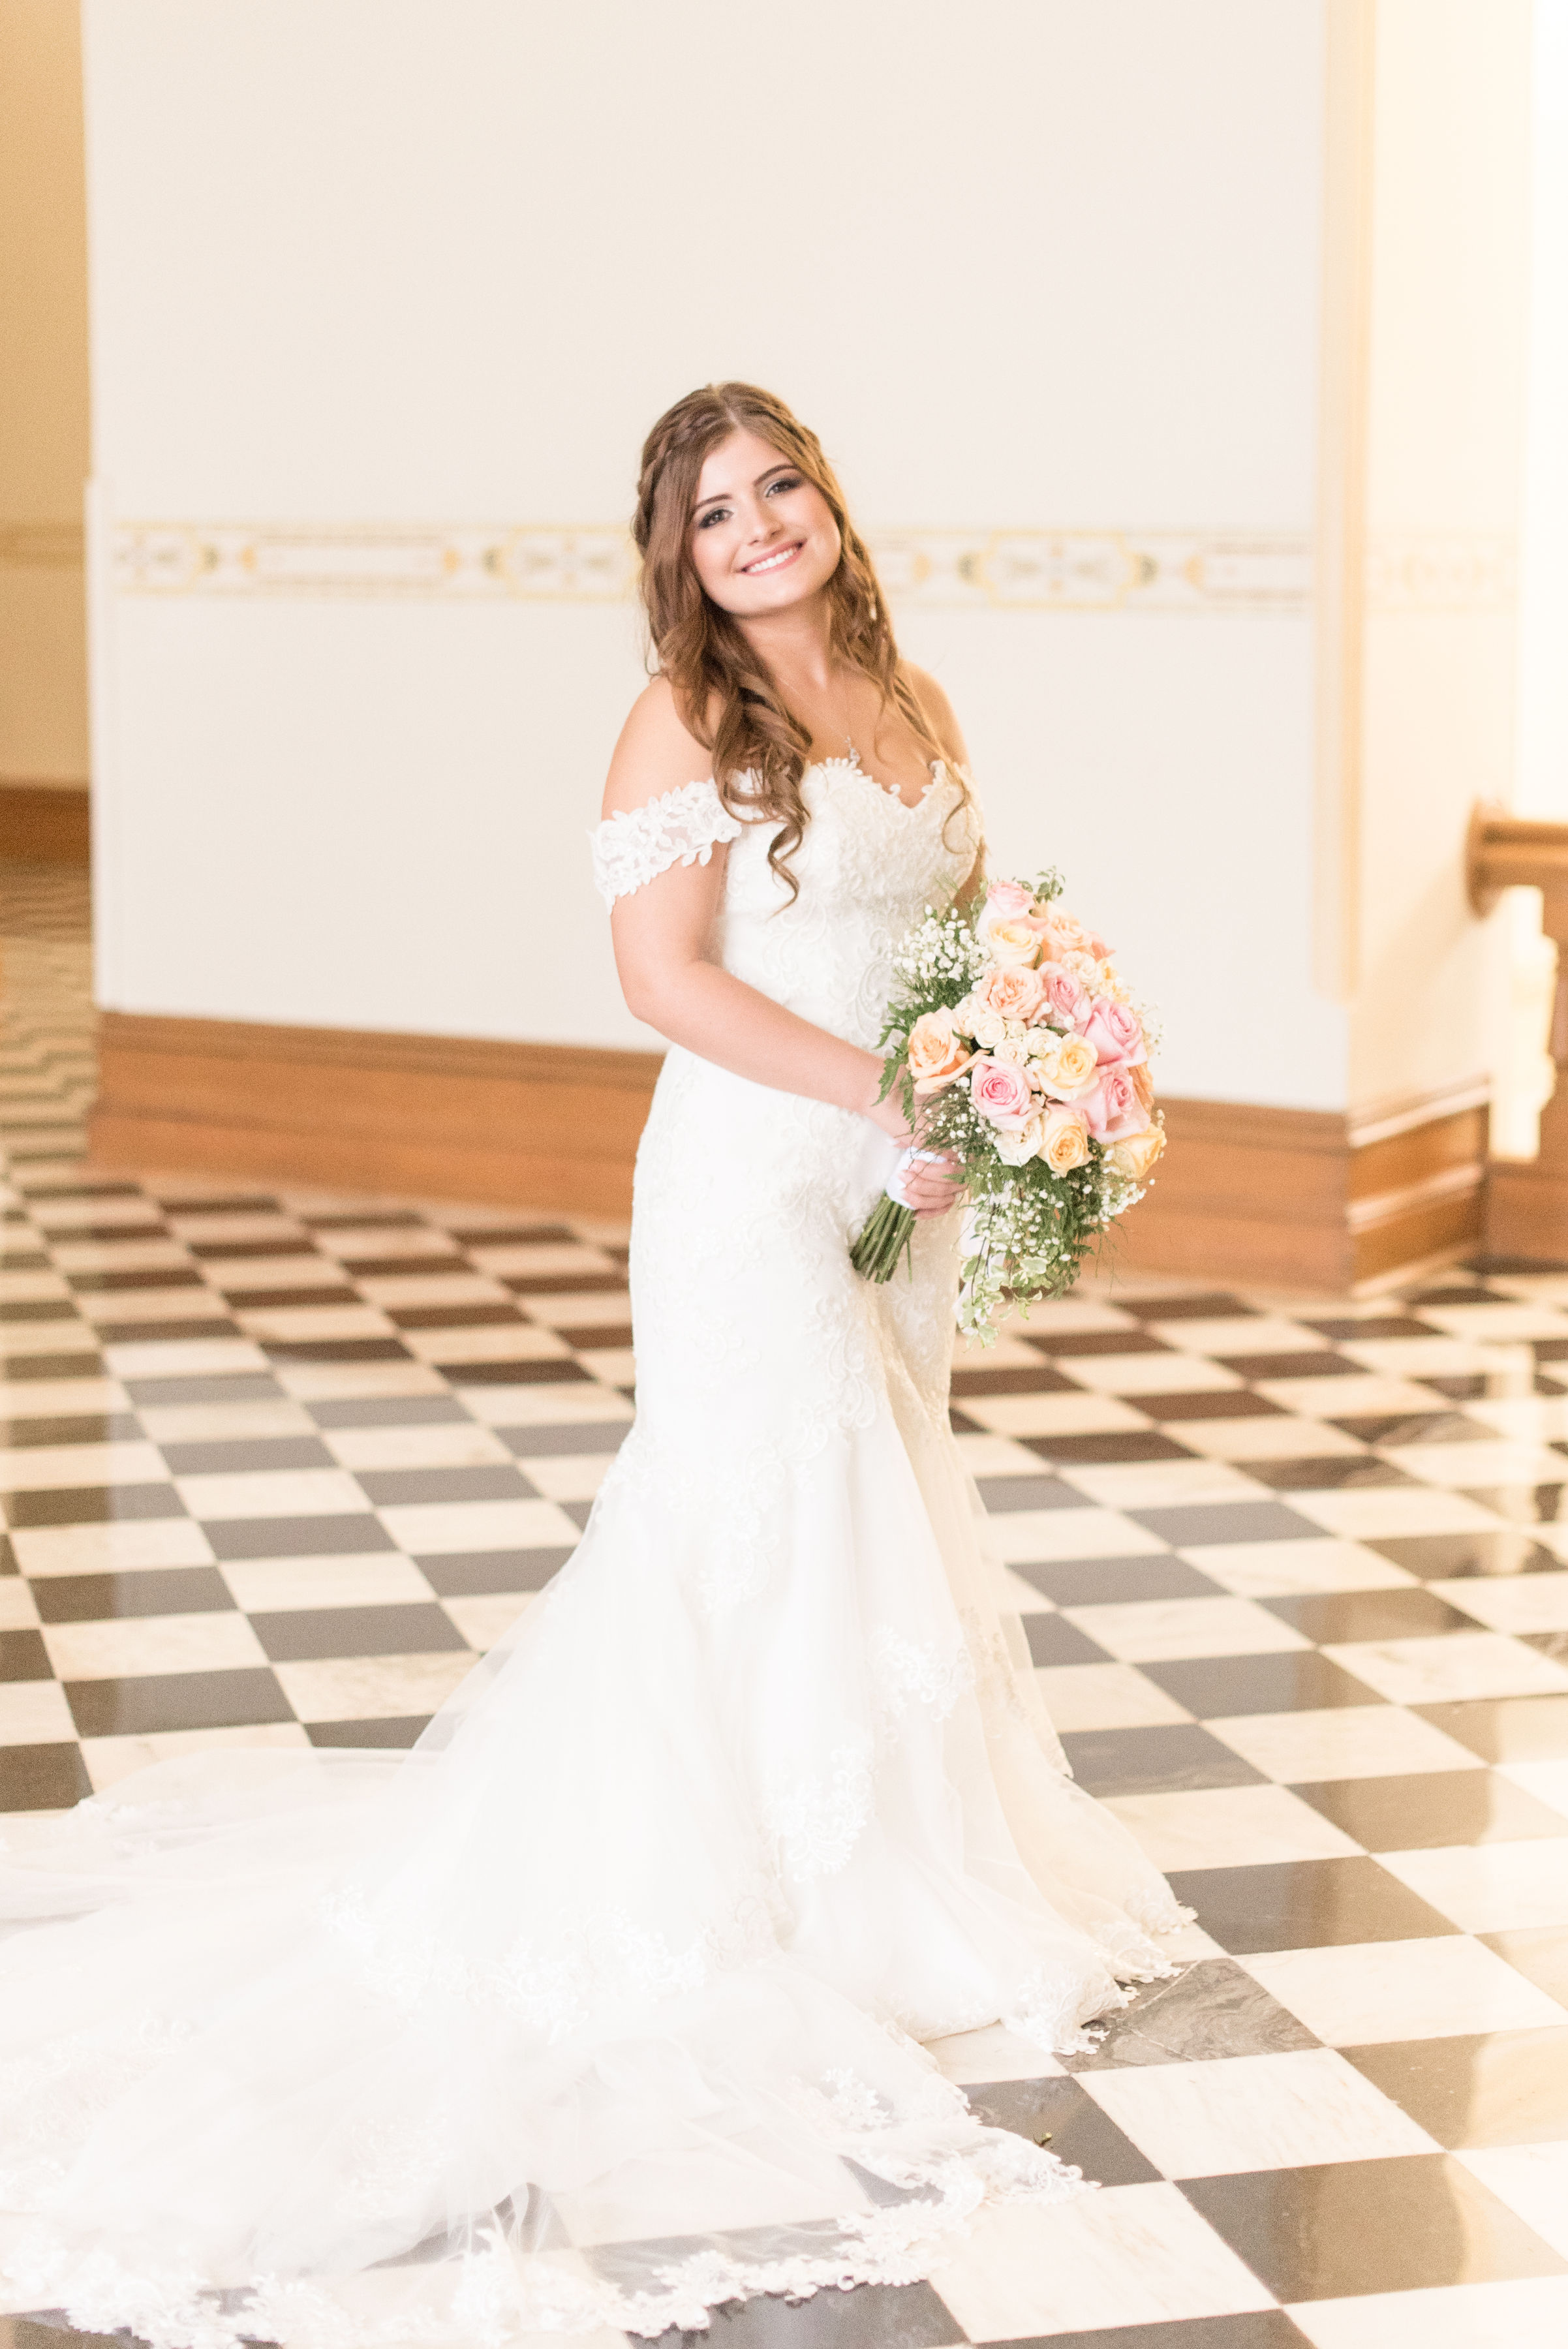 {Photos by: Victoria Rayburn Photography}